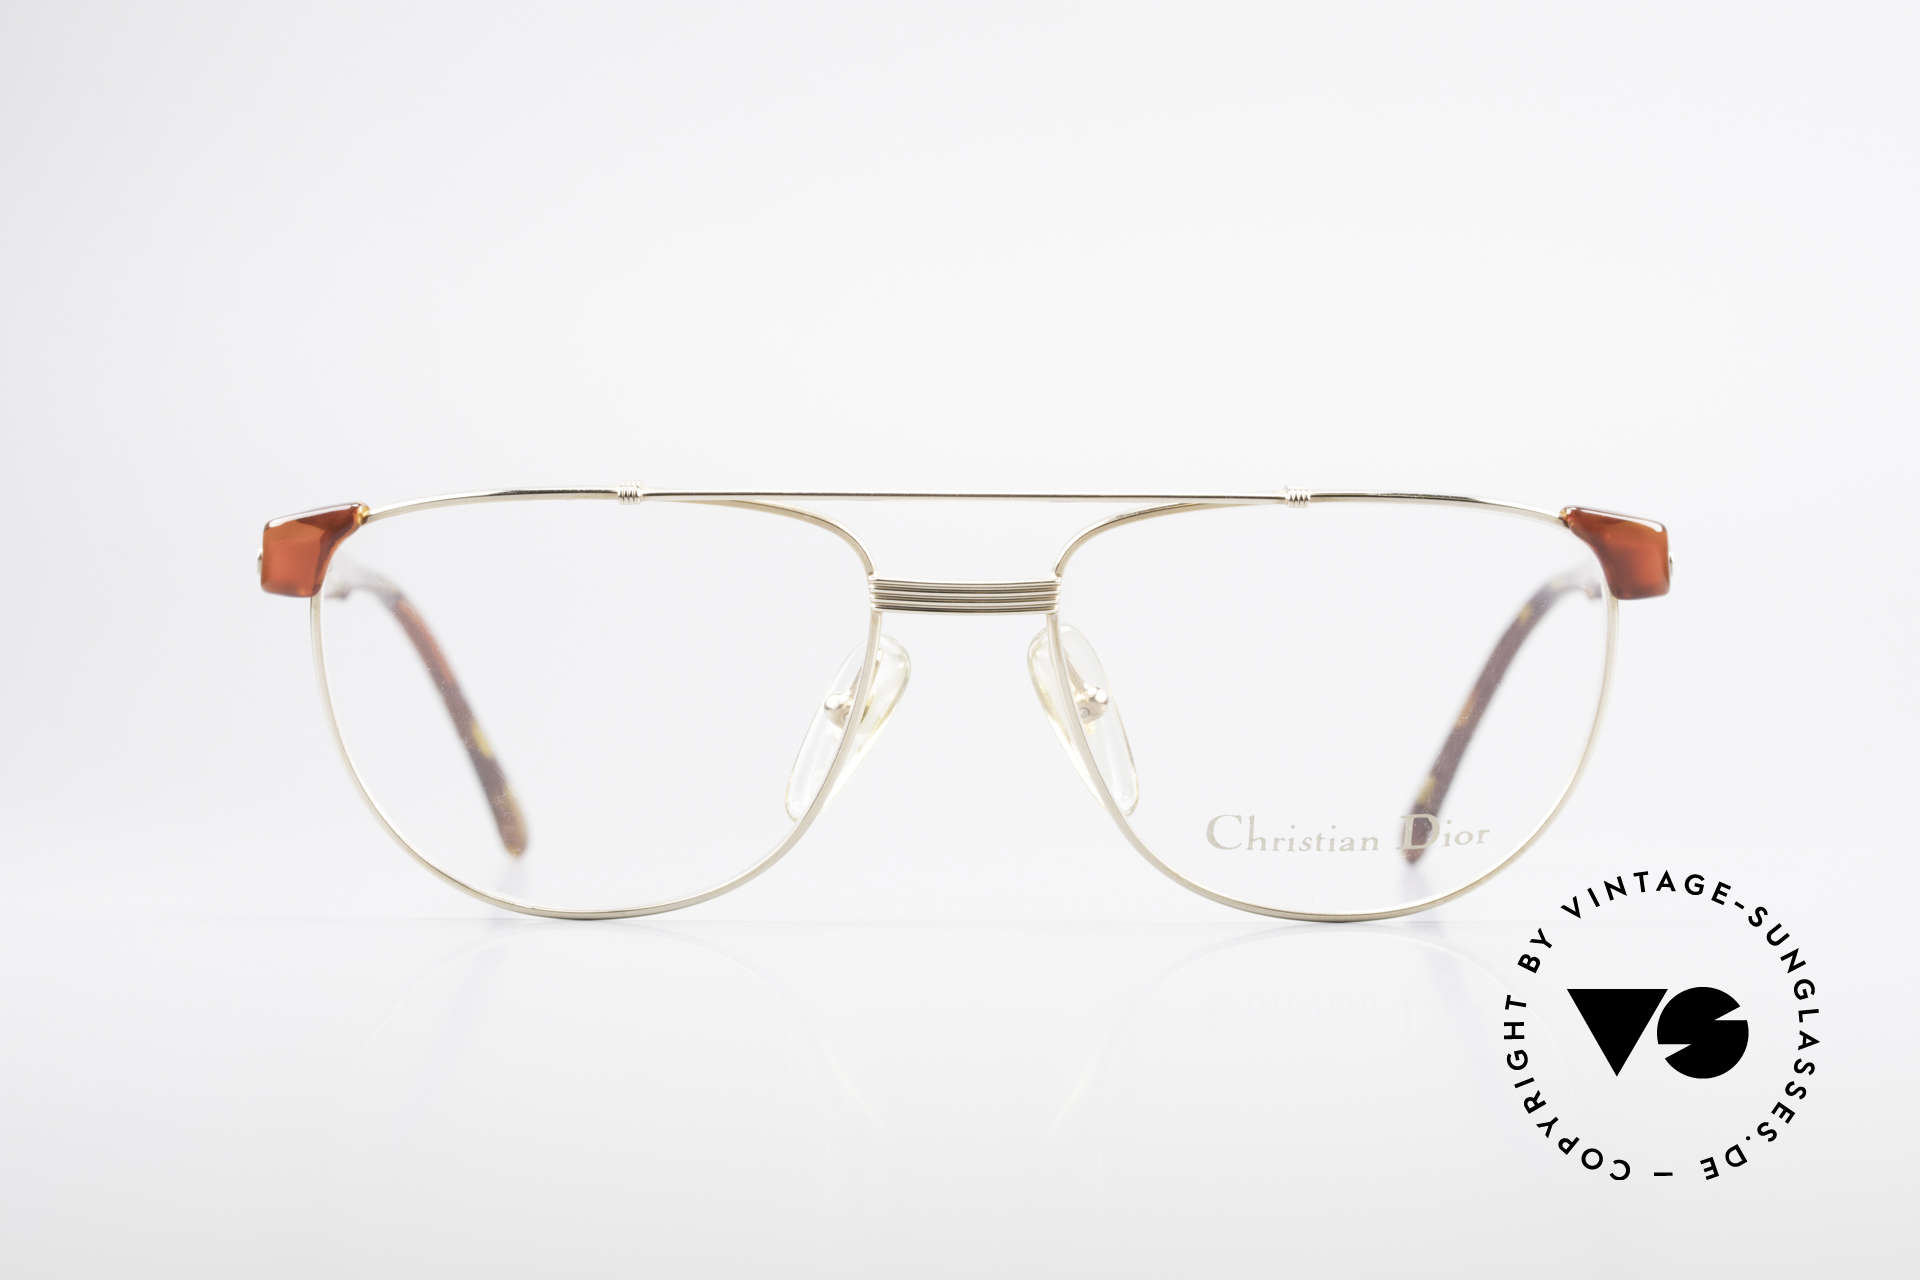 Christian Dior 2722 90's Designer Frame Unisex, combination of metal front and plastic temples, Made for Men and Women